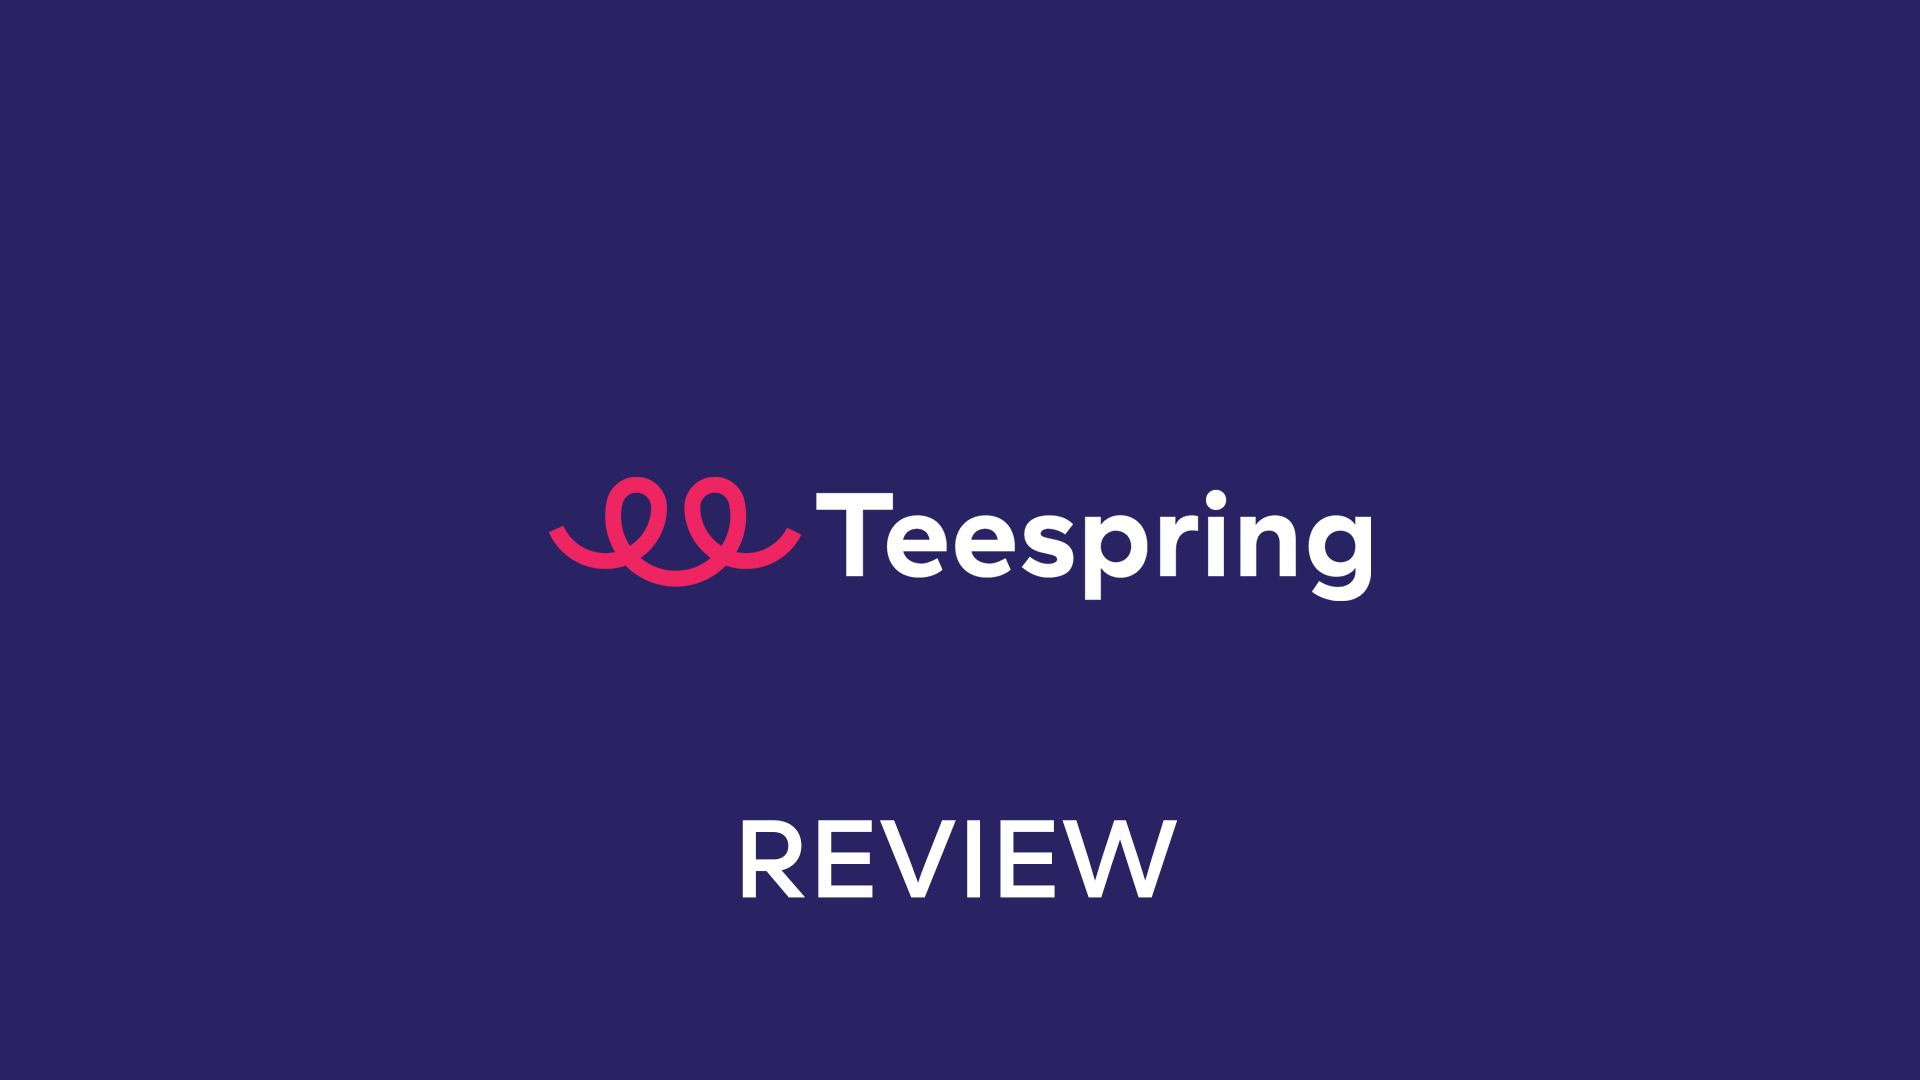 Teespring Review: Is The OG of On-Demand Printing Still Good?